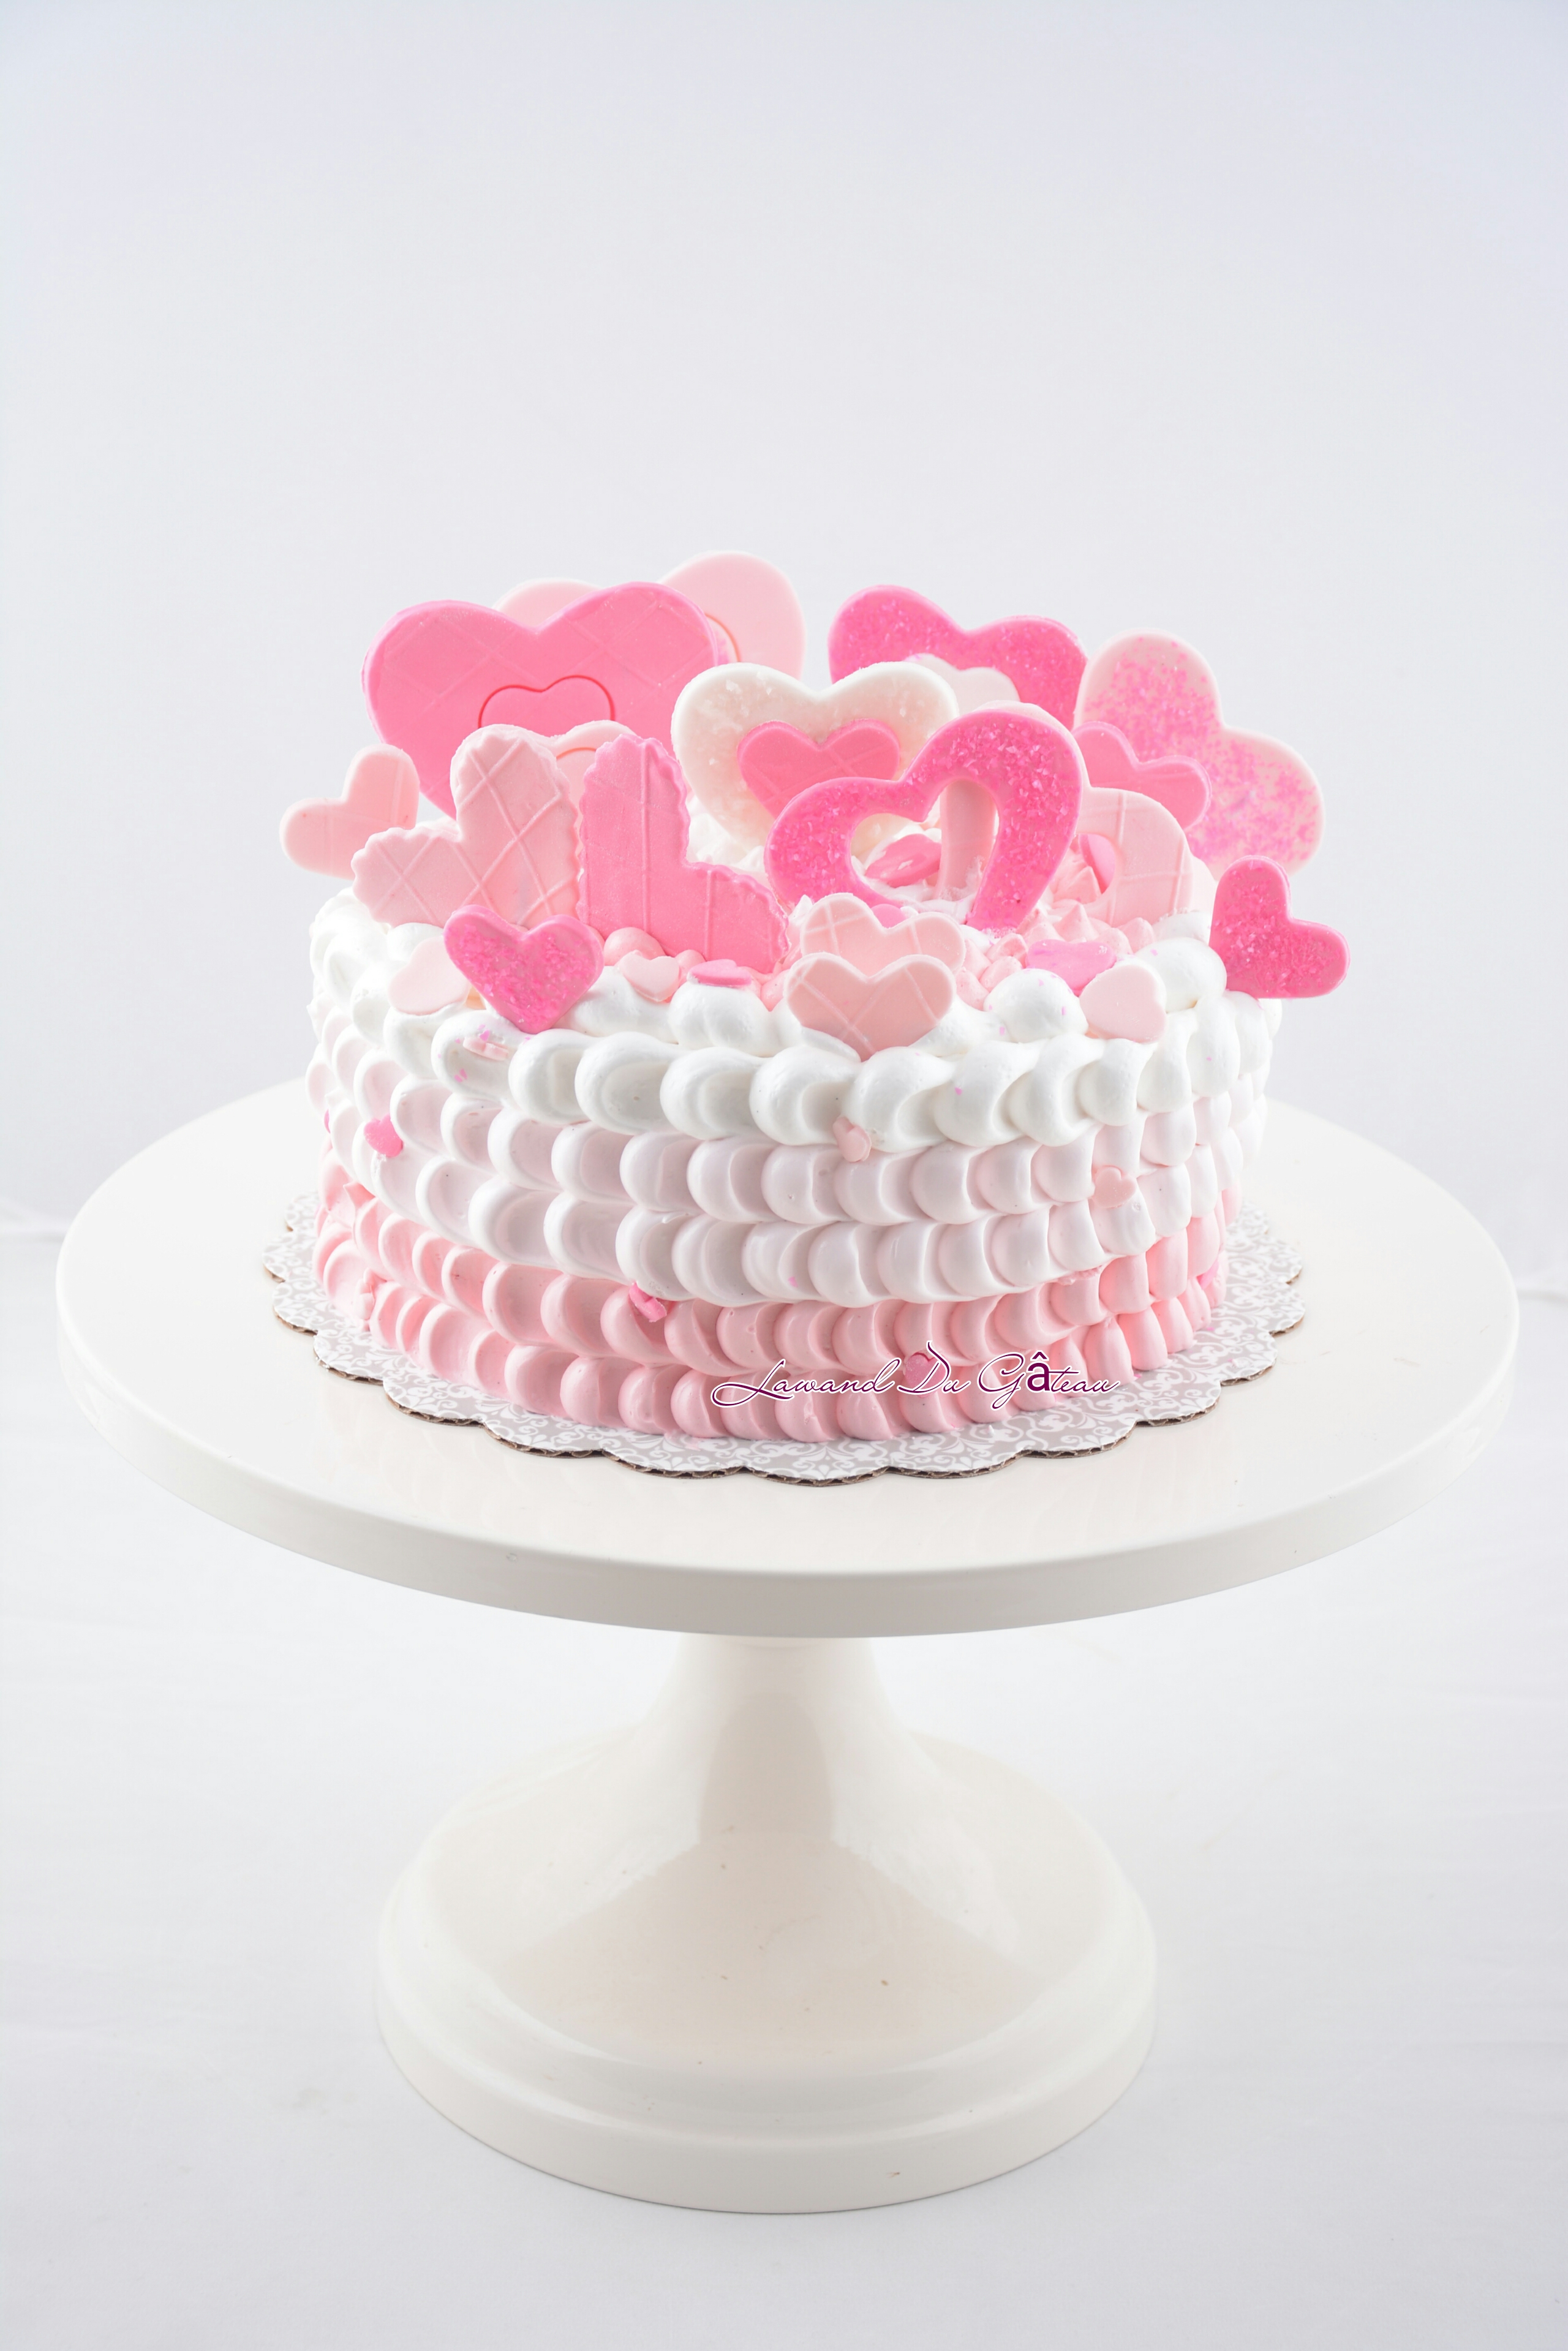 Pink and white ombre heart cake